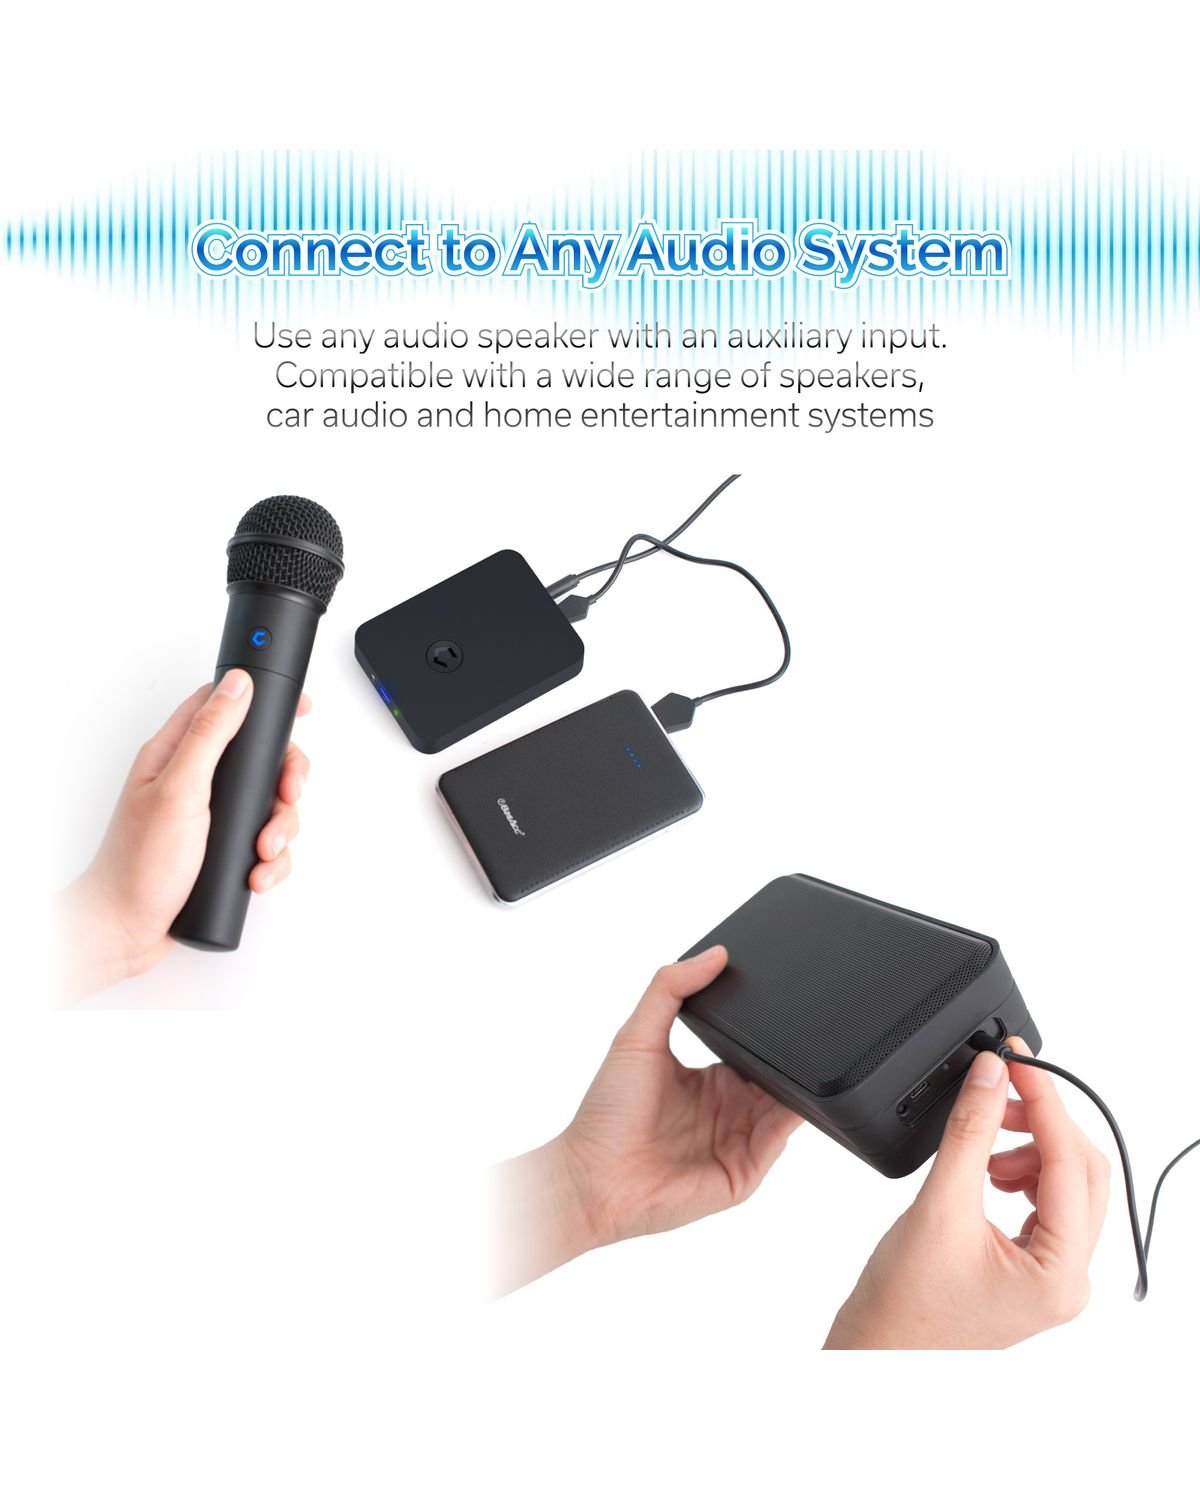 Cobble Pro Wireless Karaoke Microphone 2-pack Mic [Source Vocal Removal Technology][Choose Unlimited Music Source from YouTube, Compatible with iPhone iPad Phone Tablet] New Model BT Speaker Machine by Cobble (Image #6)